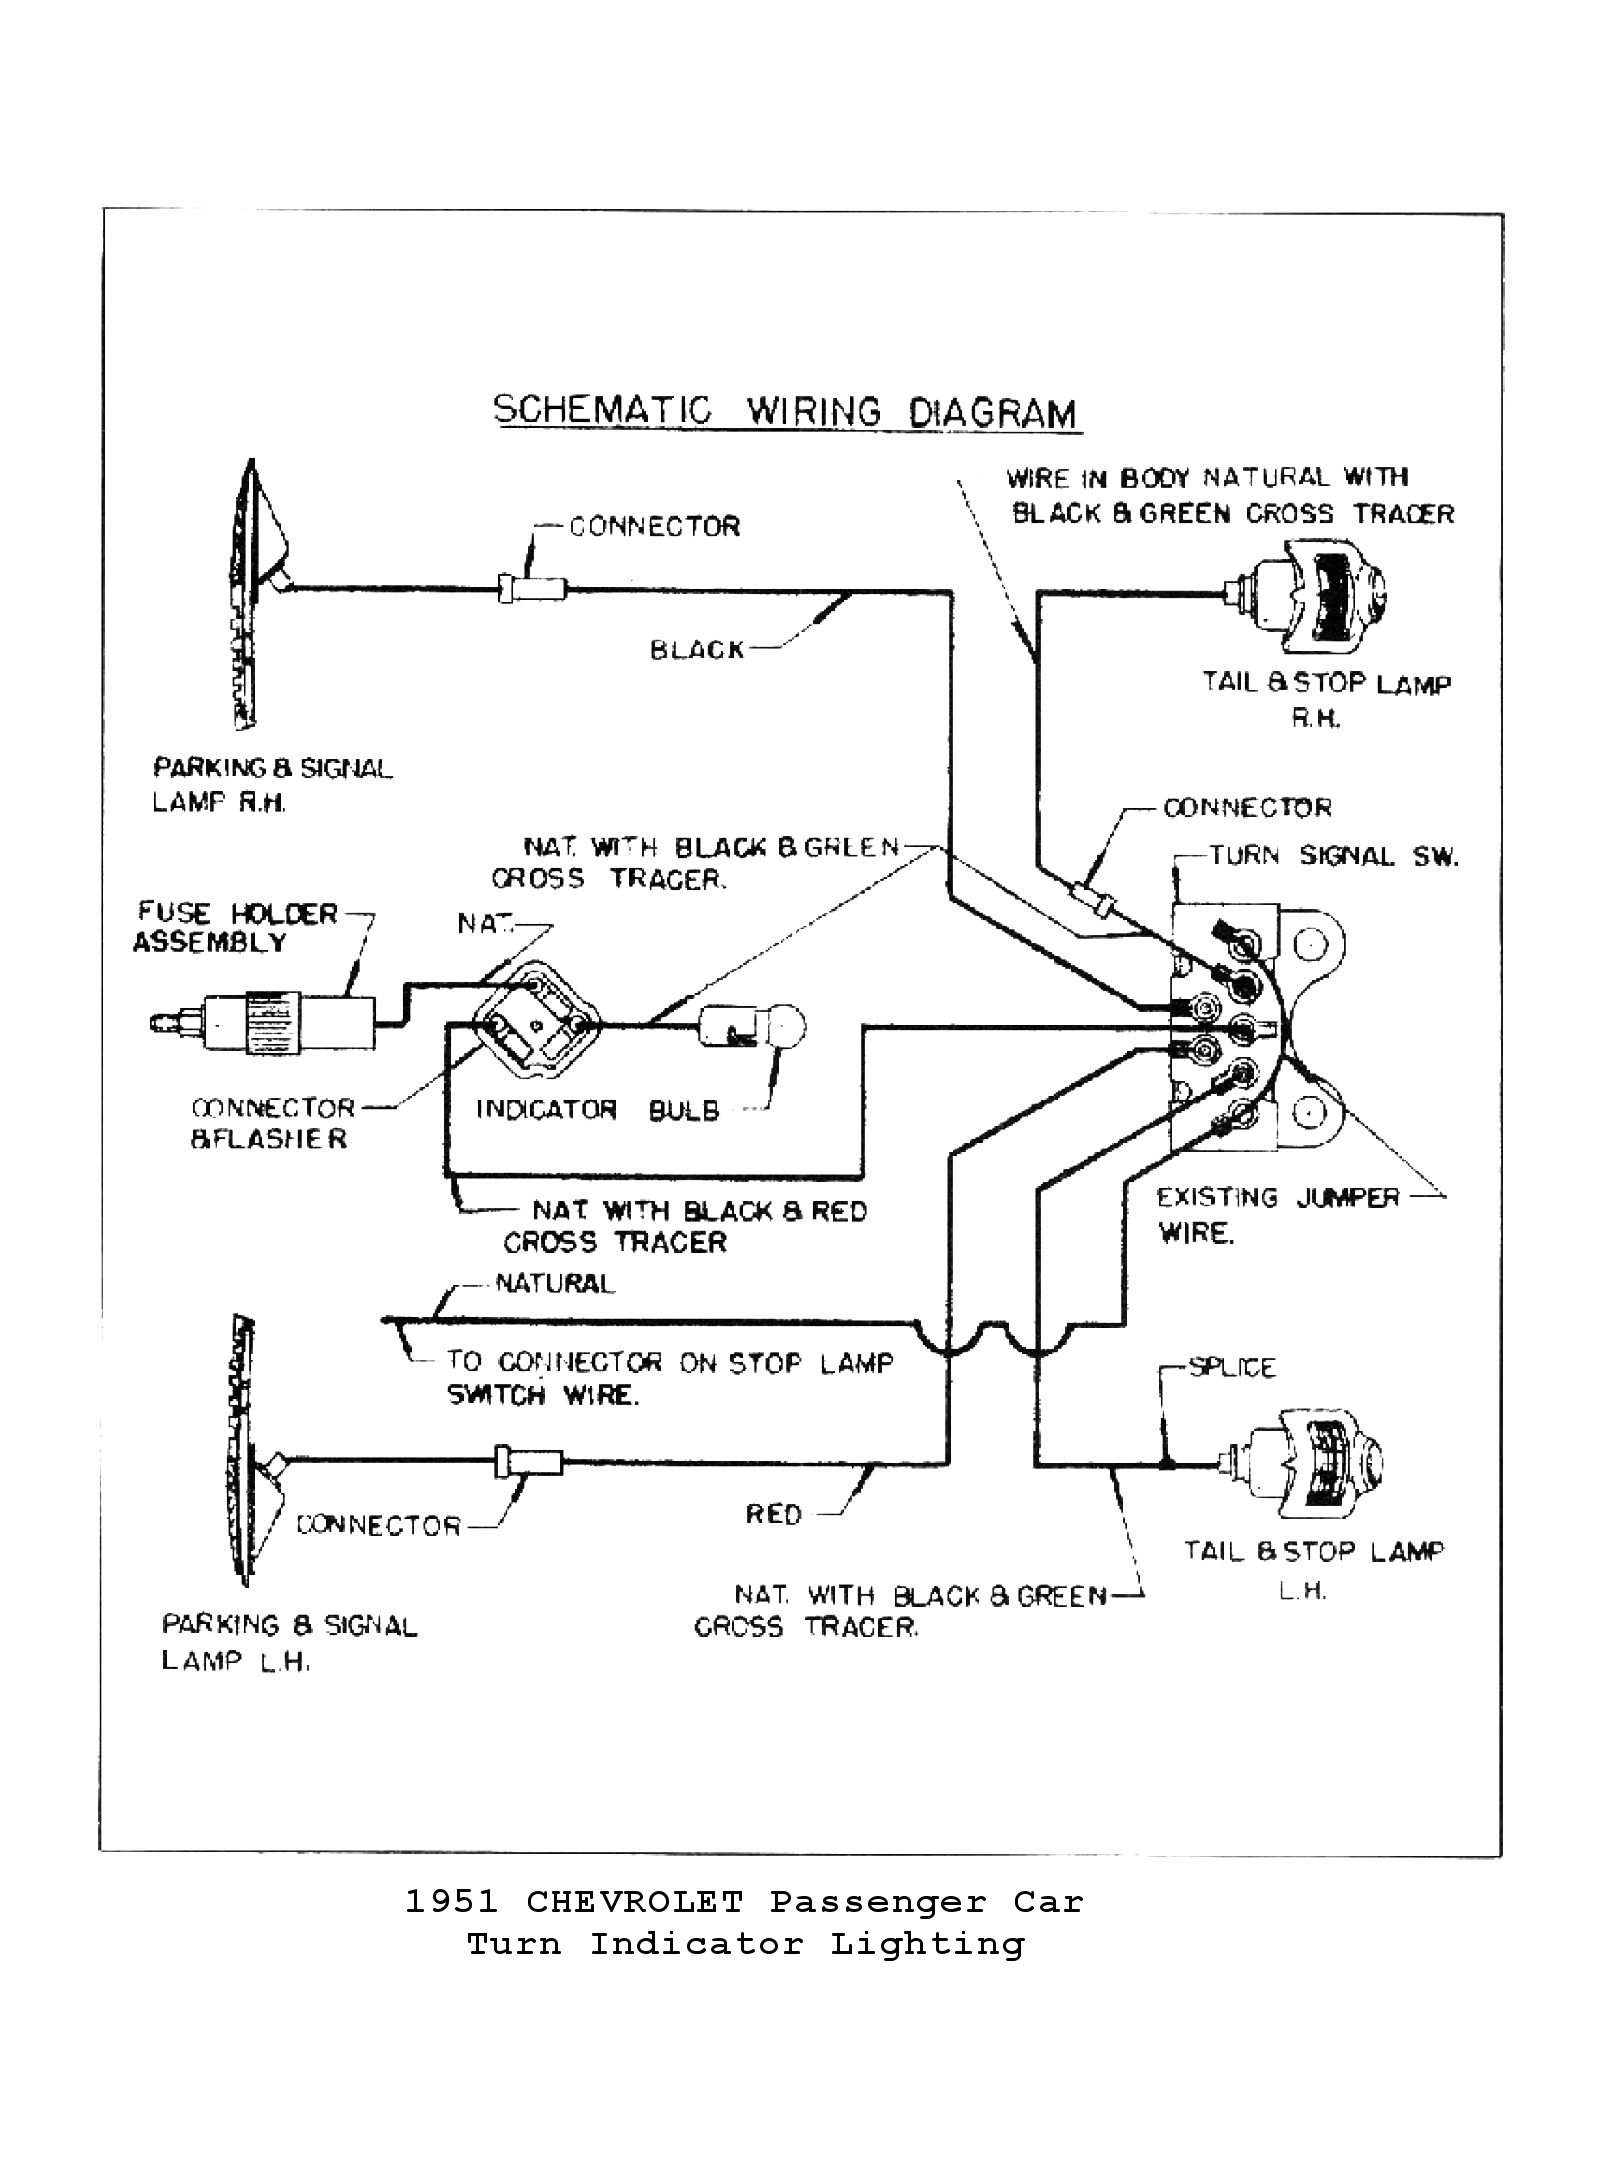 chevy wiring diagrams  1955 chevy wiring catalogue of schemas